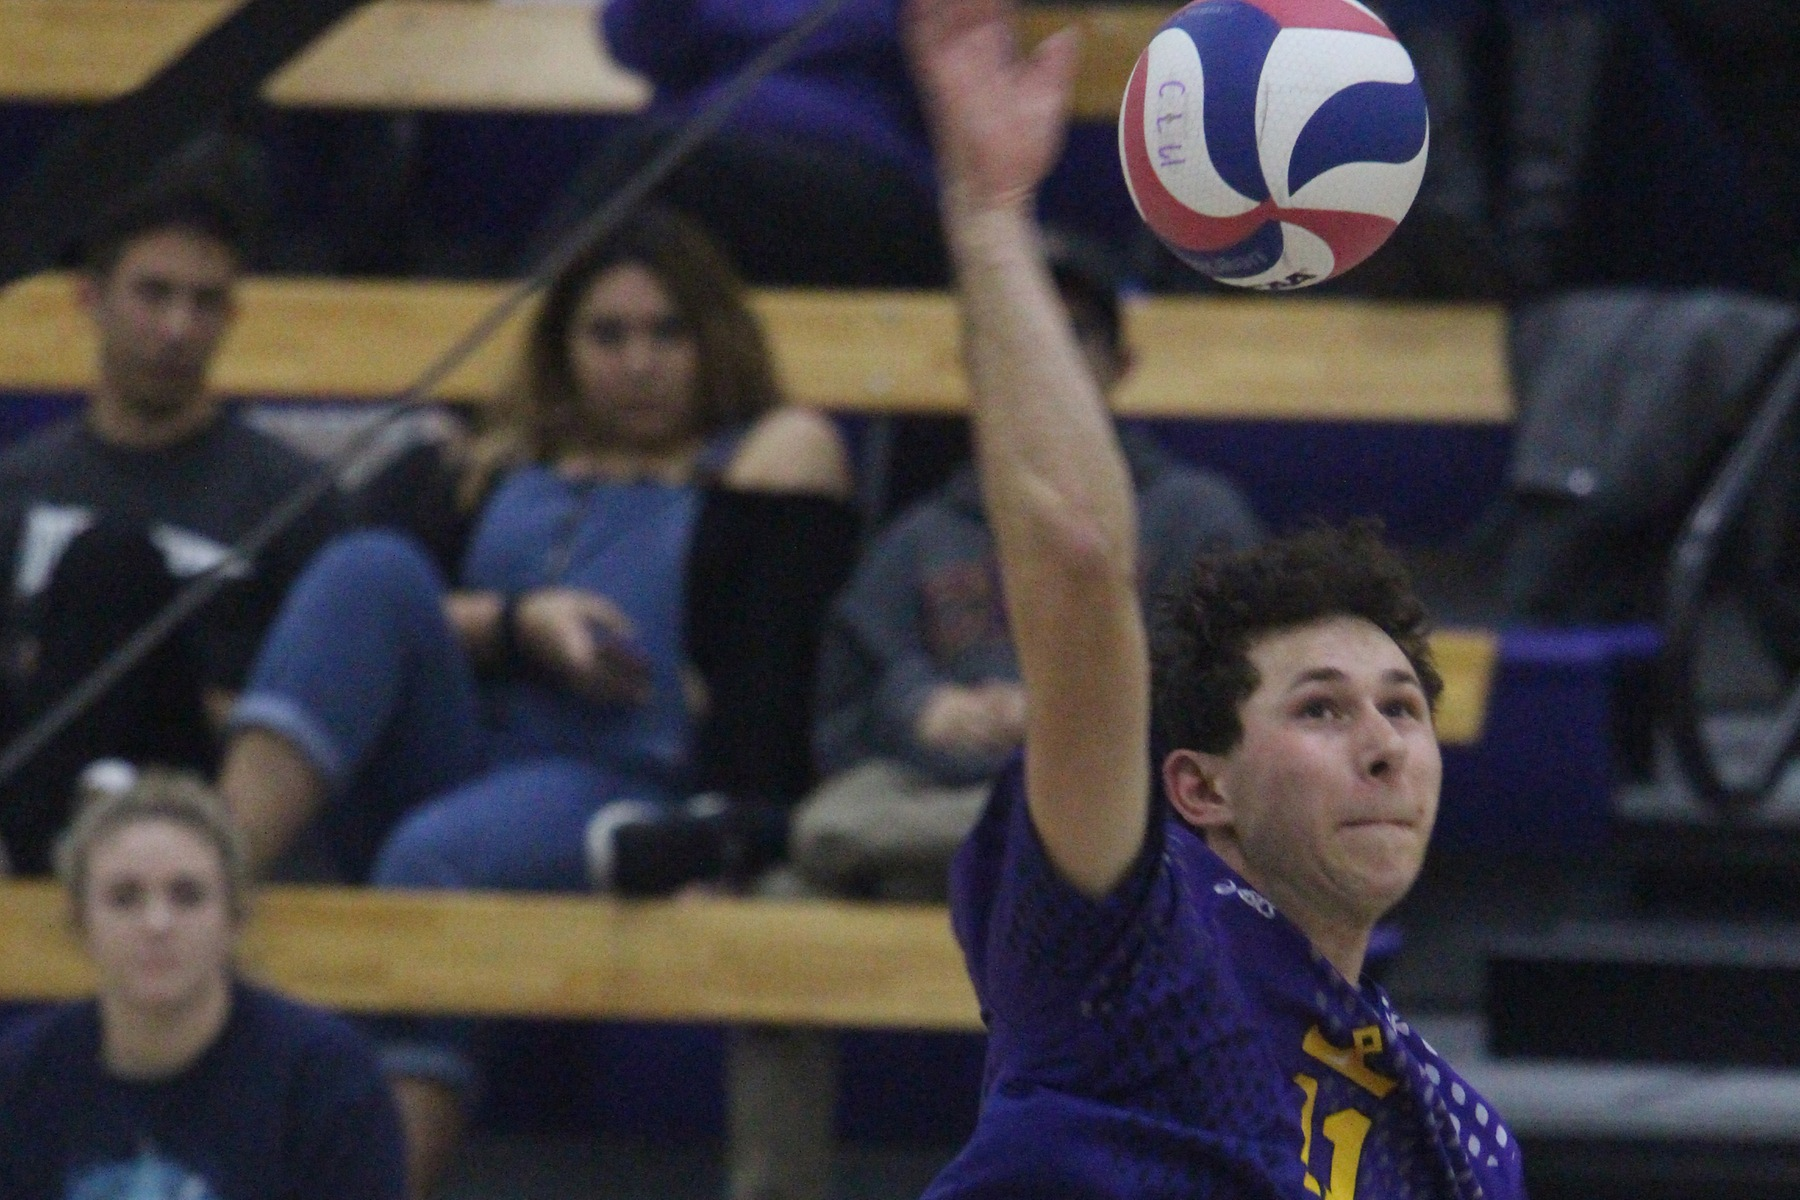 Justin Dietrich tallied a season-high for kills (11) and hitting percentage (.688) against No. 3 Carthage.